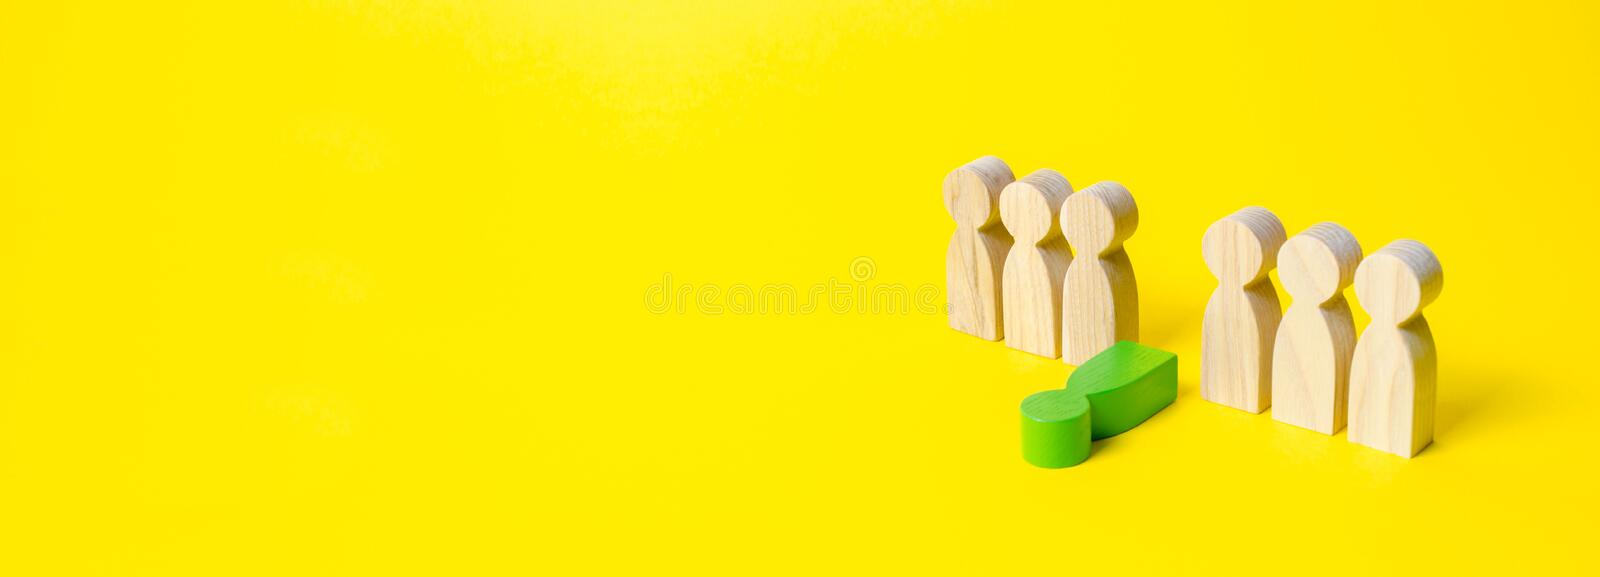 The figure of a green man falls out of a number of people on a yellow background. The concept of a toxic employee in the team. royalty free stock images